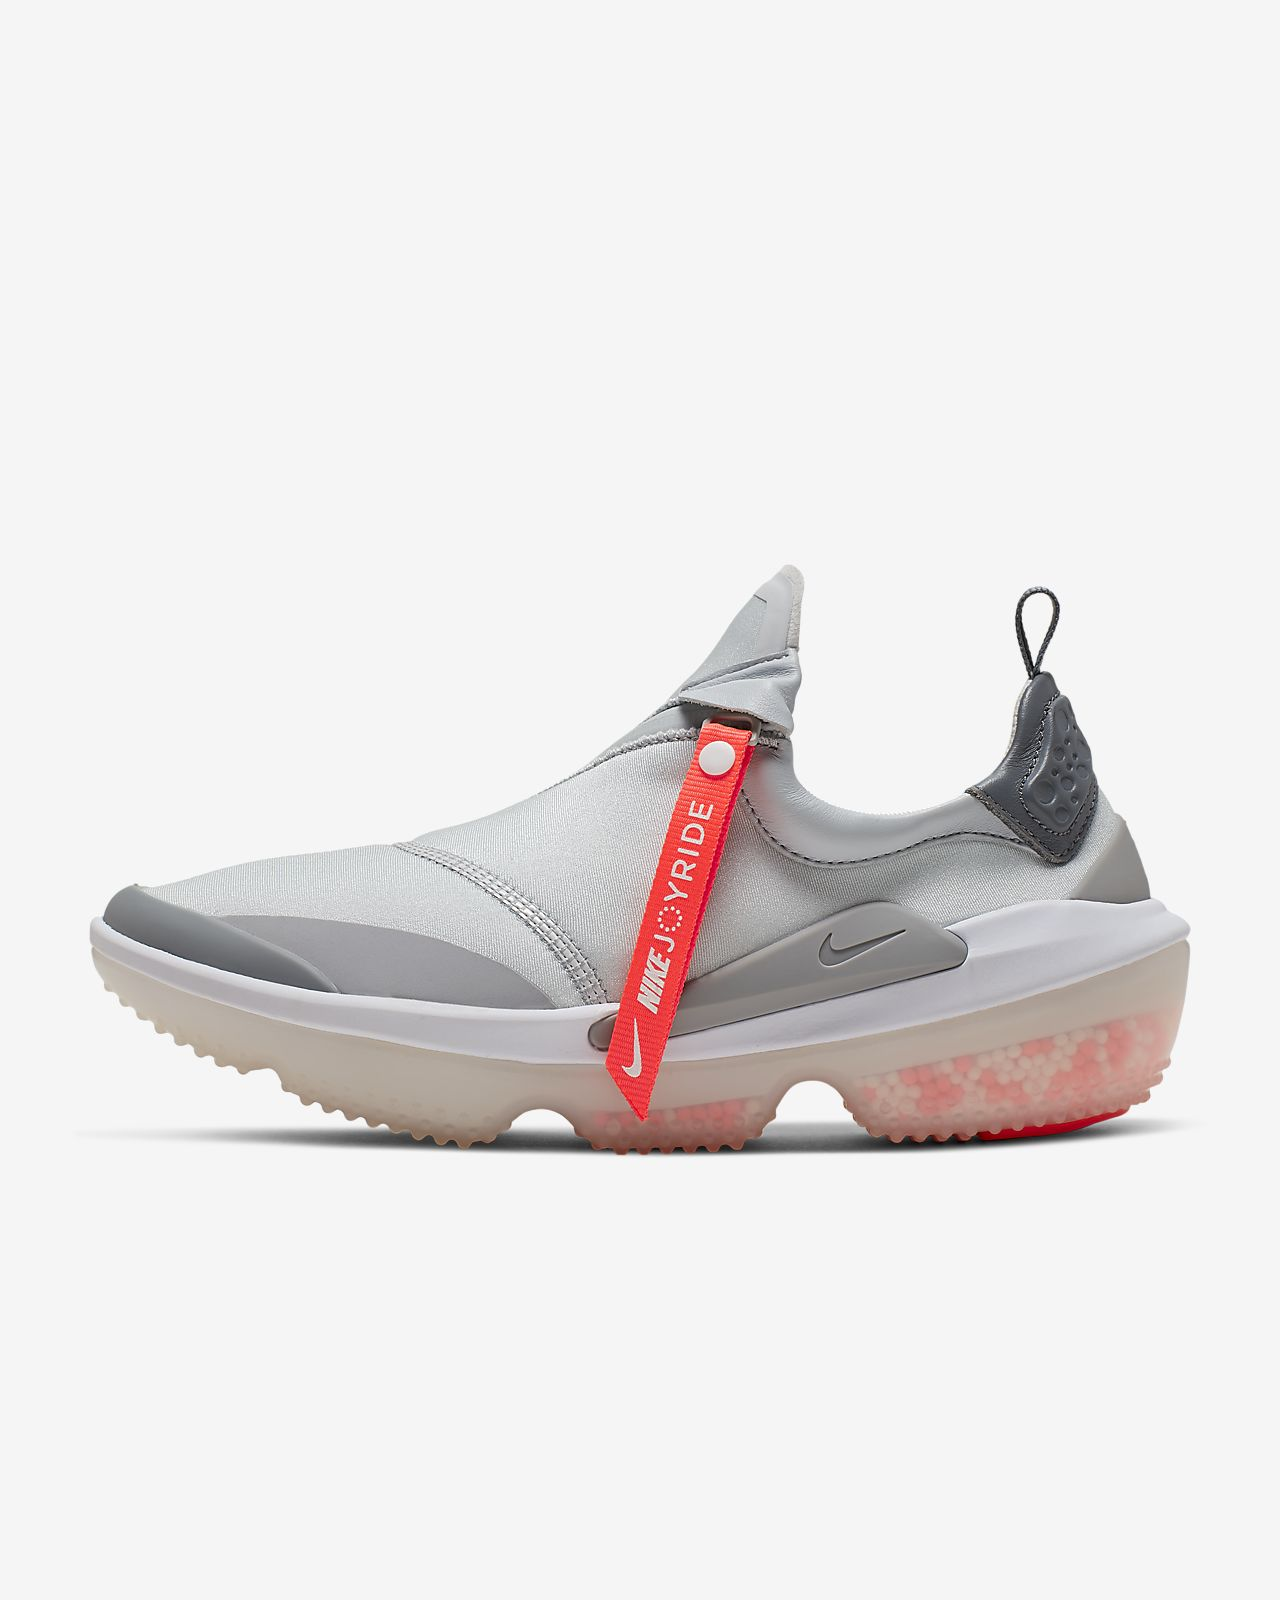 Nike Joyride Optik Damenschuh